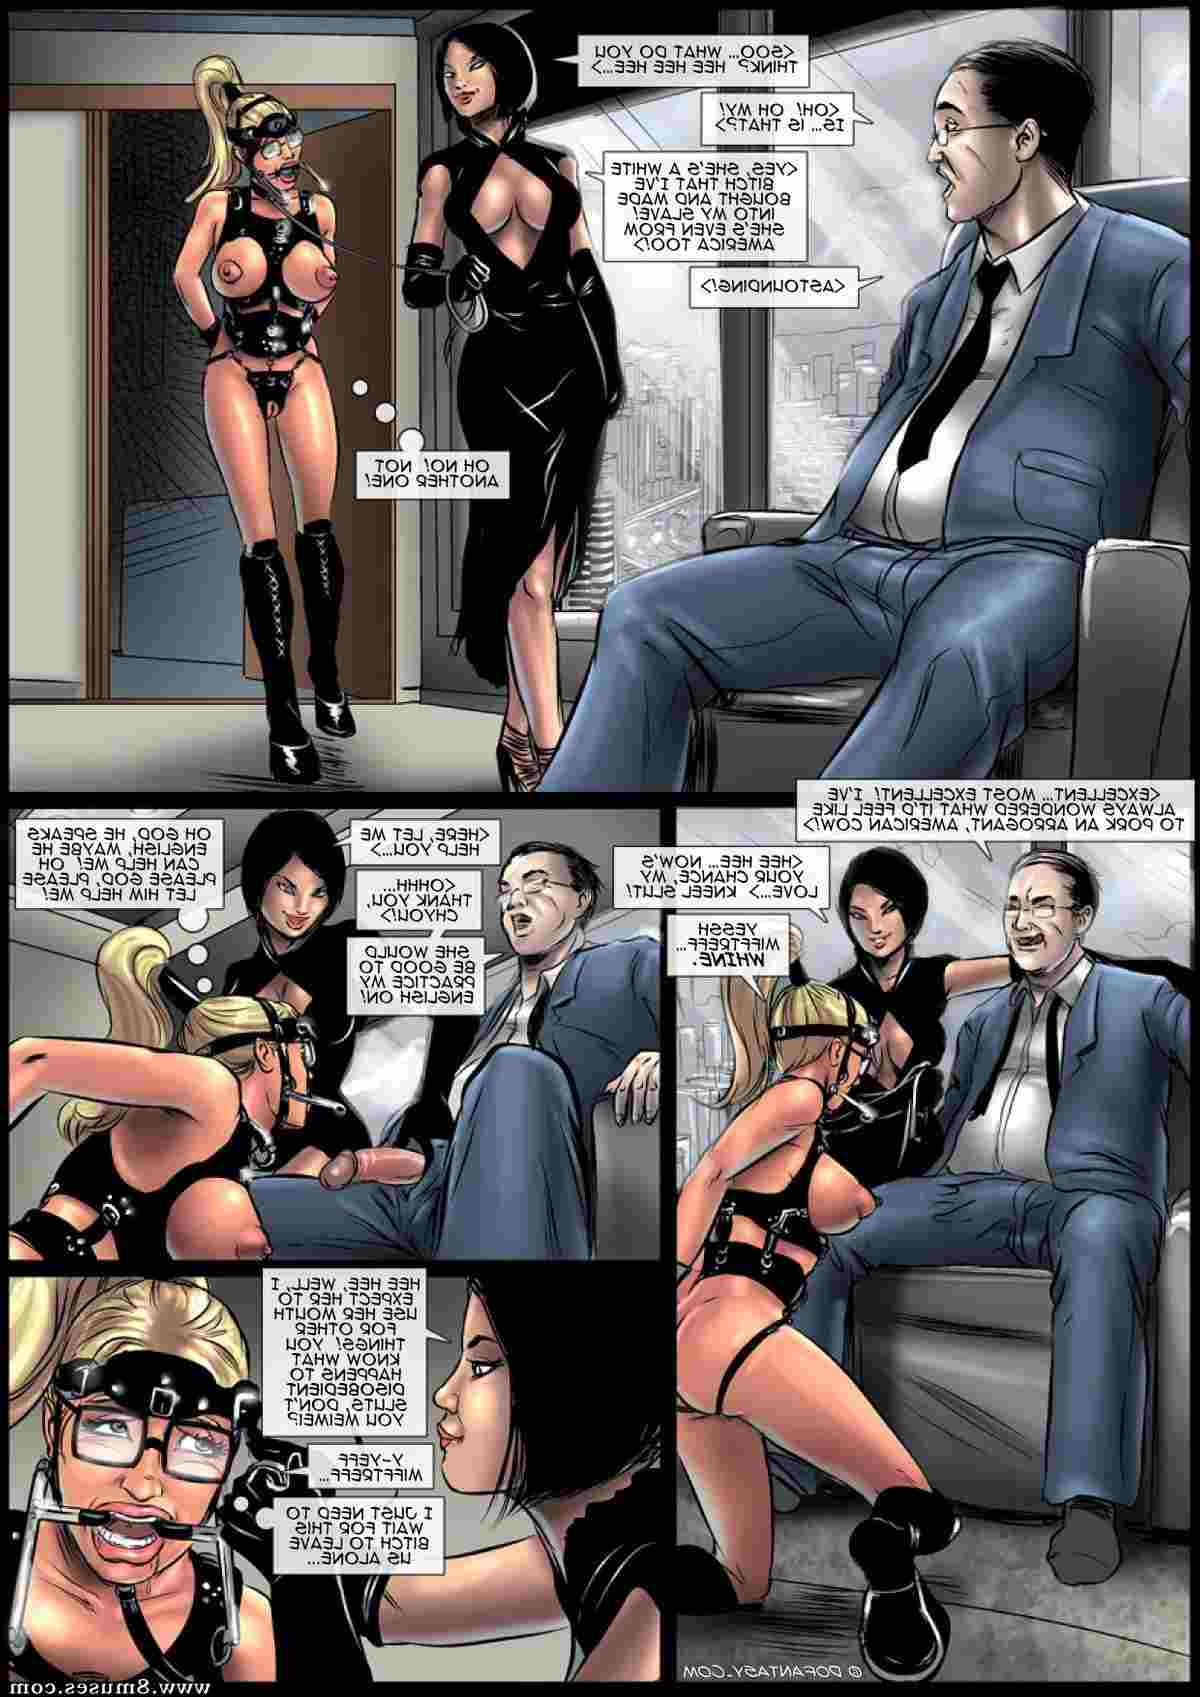 Fansadox-Comics/401-500/Fansadox-427-A-Tale-Of-Chinese-Slavery-2-Traded-Celestin Fansadox_427_-_A_Tale_Of_Chinese_Slavery_2_-_Traded_-_Celestin__8muses_-_Sex_and_Porn_Comics_23.jpg